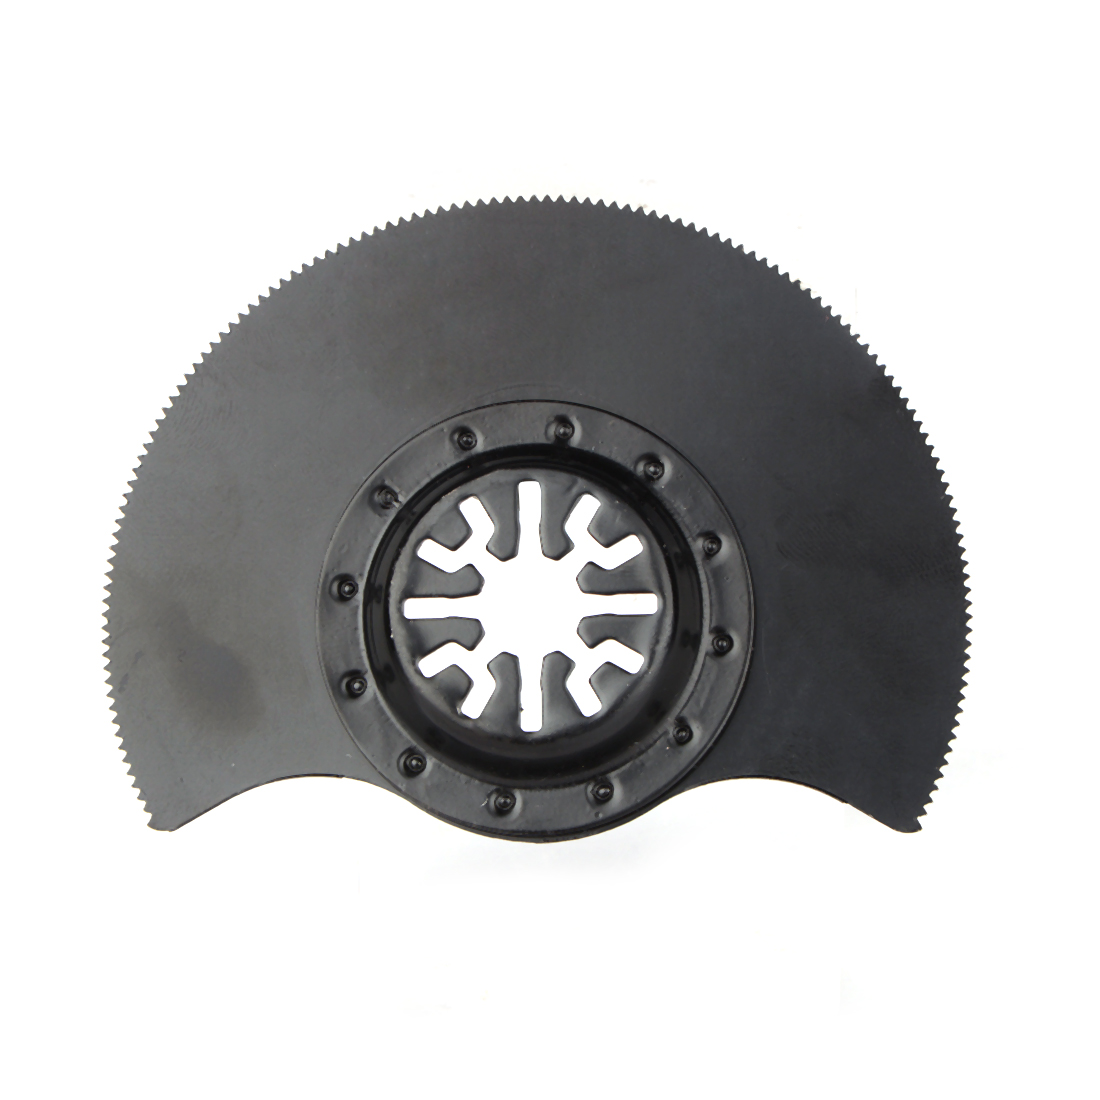 Semi-circular Oscillating Saw Blade HCS For Multimaster Fein Makita Decker Wood Cutting Tools 88mm